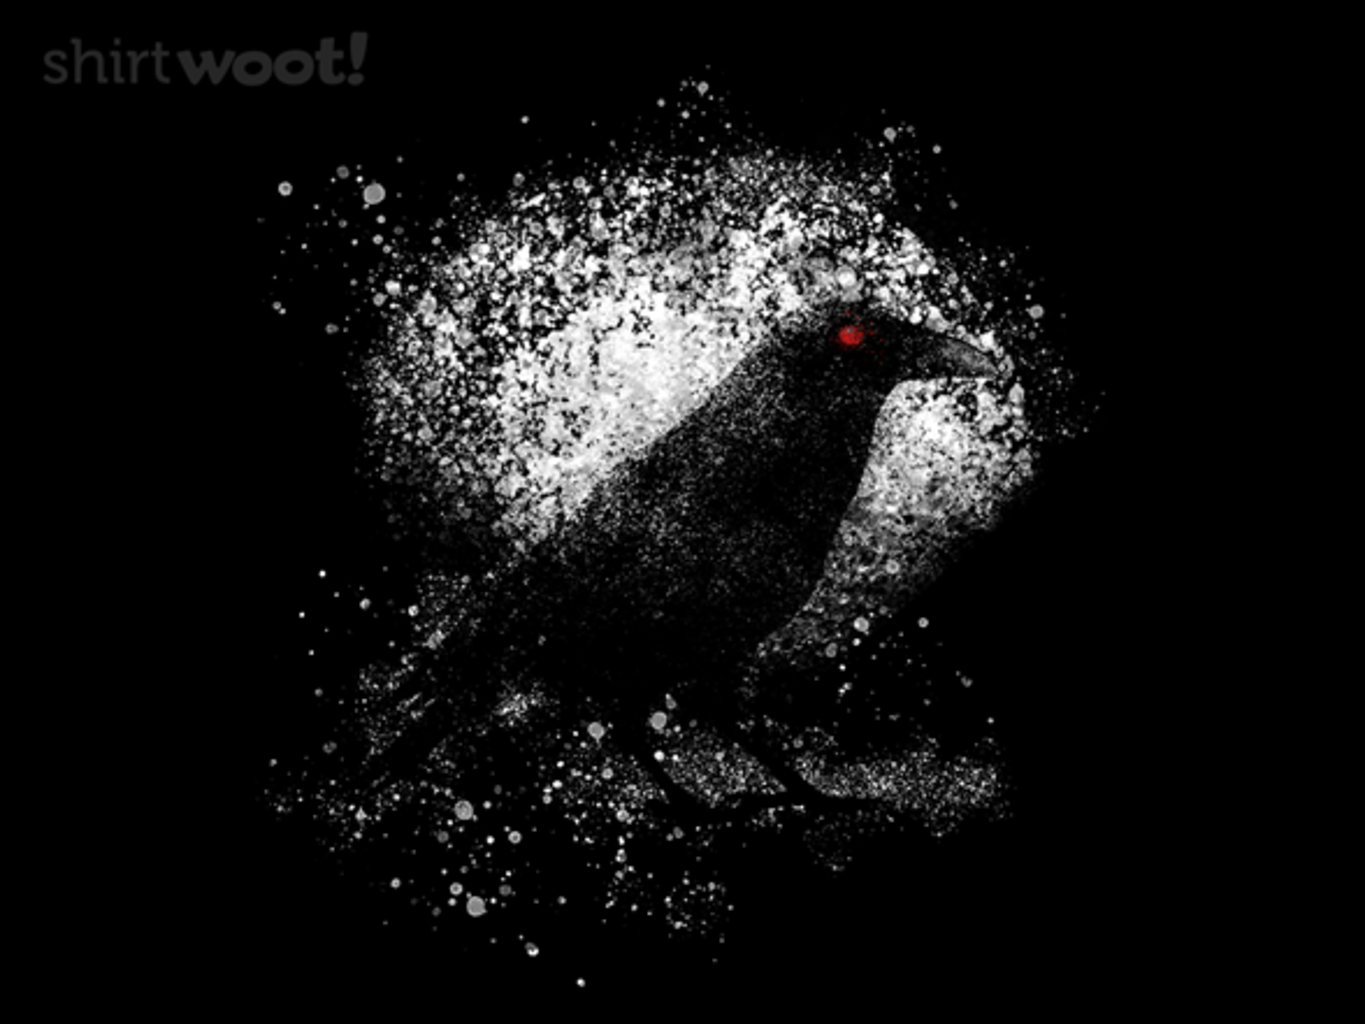 Woot!: Crow